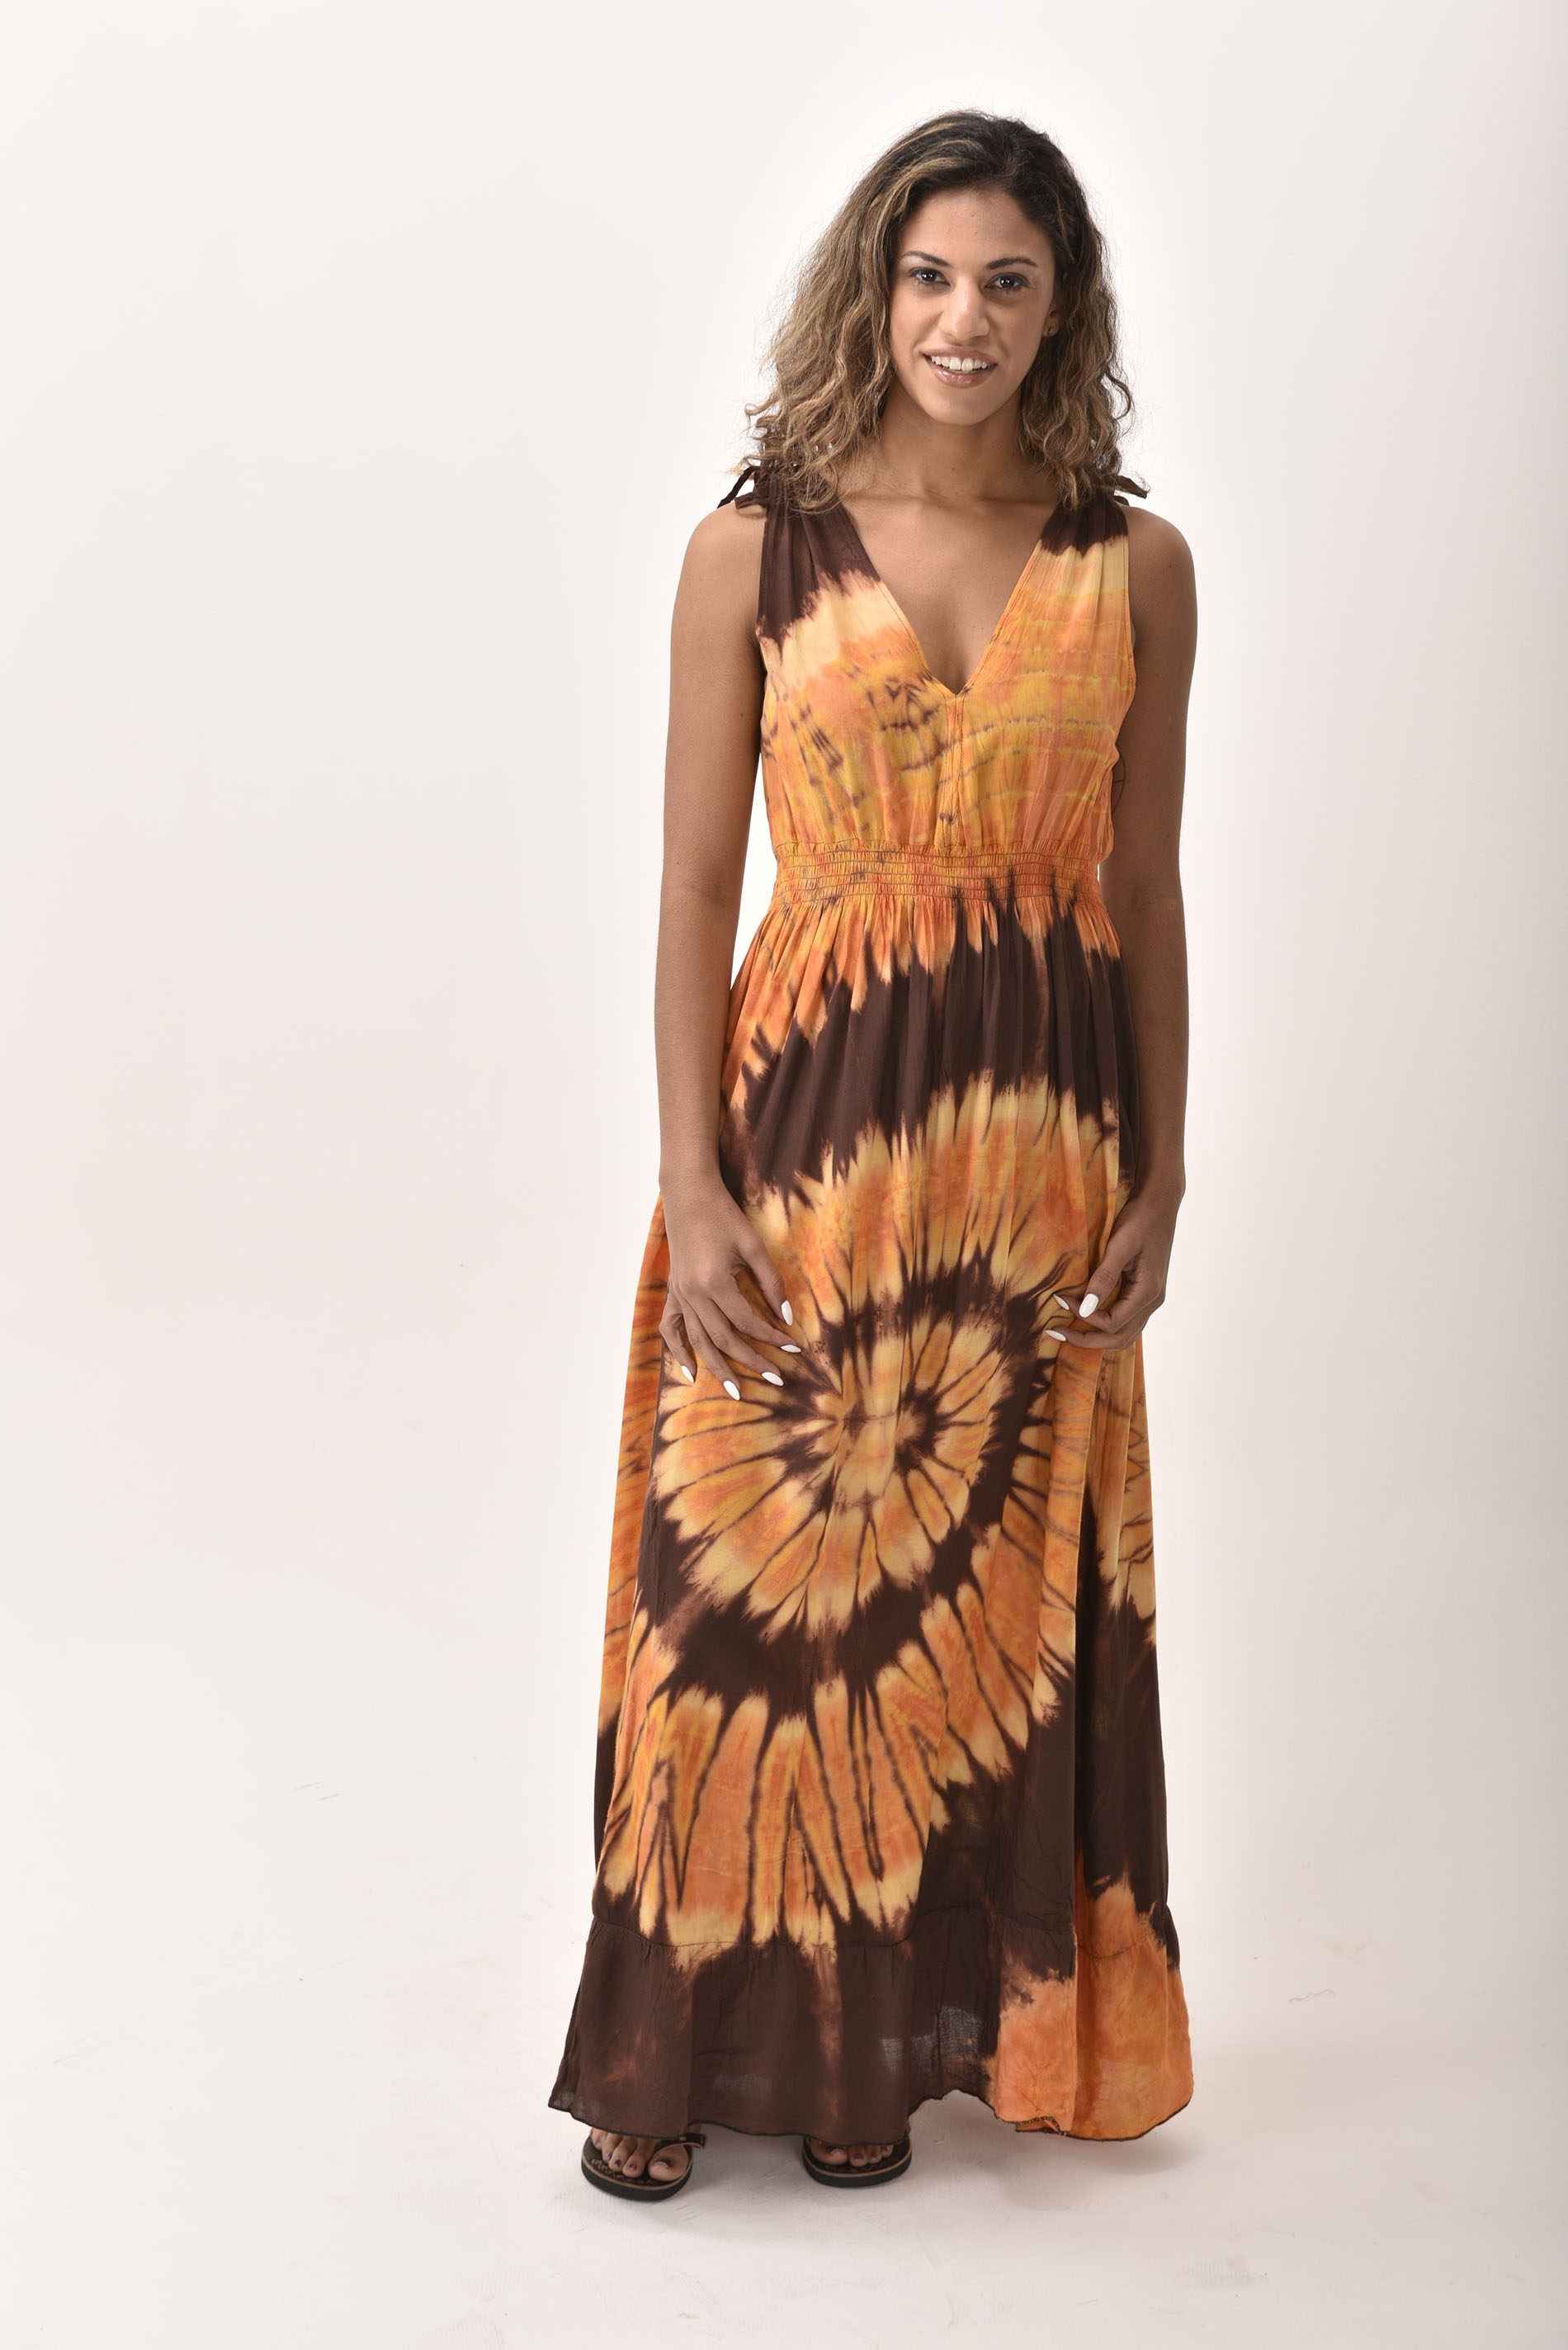 V-Neck Maxi Dress Hand Painted Tie Dye, Orange Brown